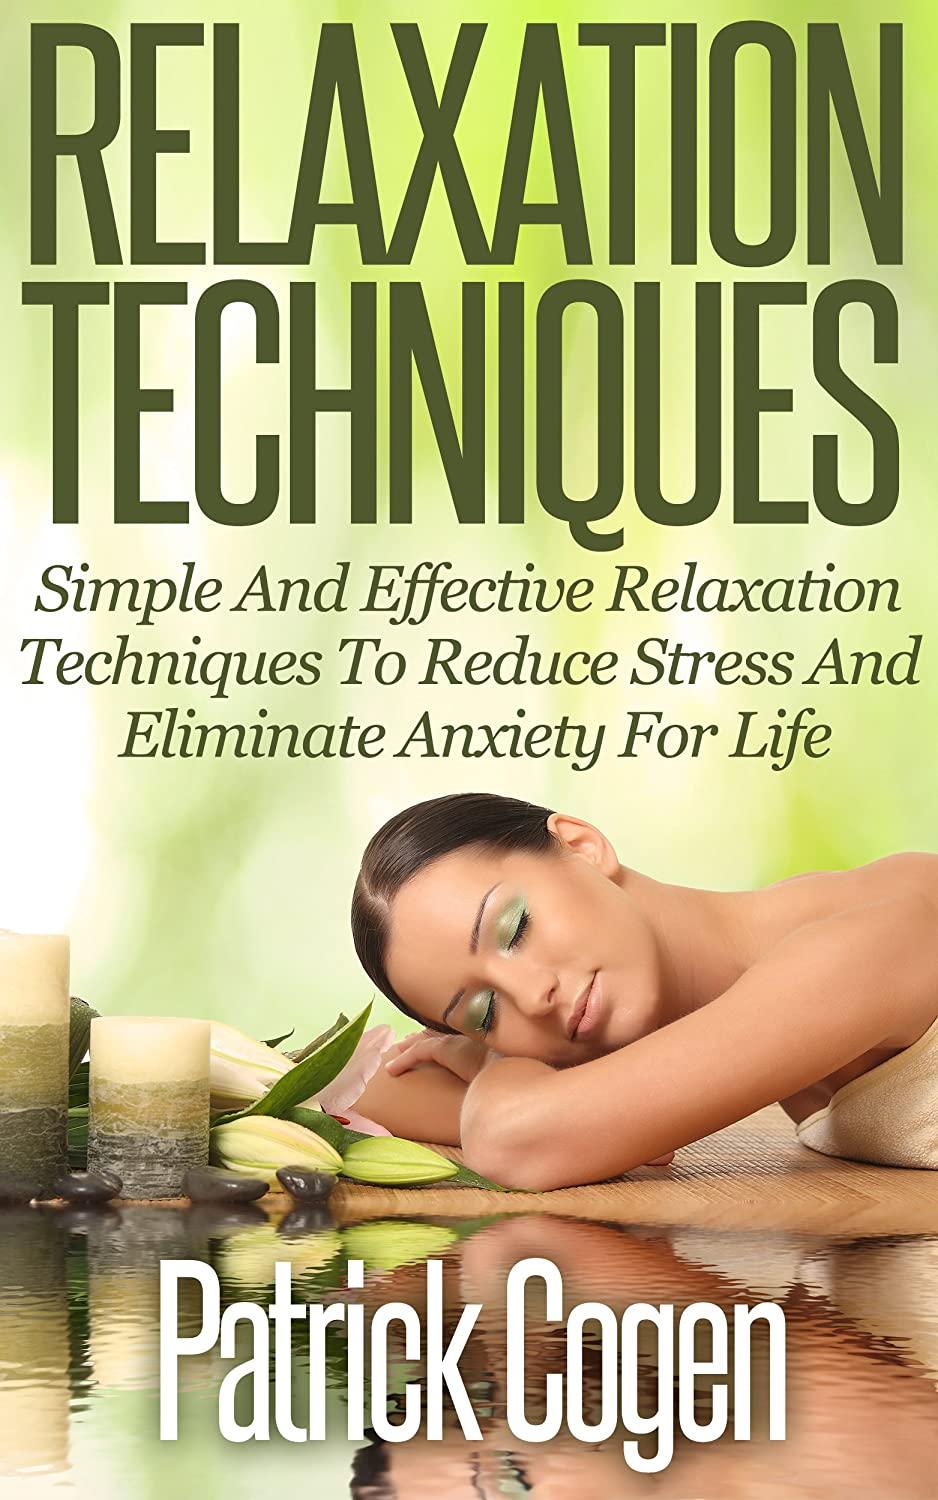 Relaxation-techniques